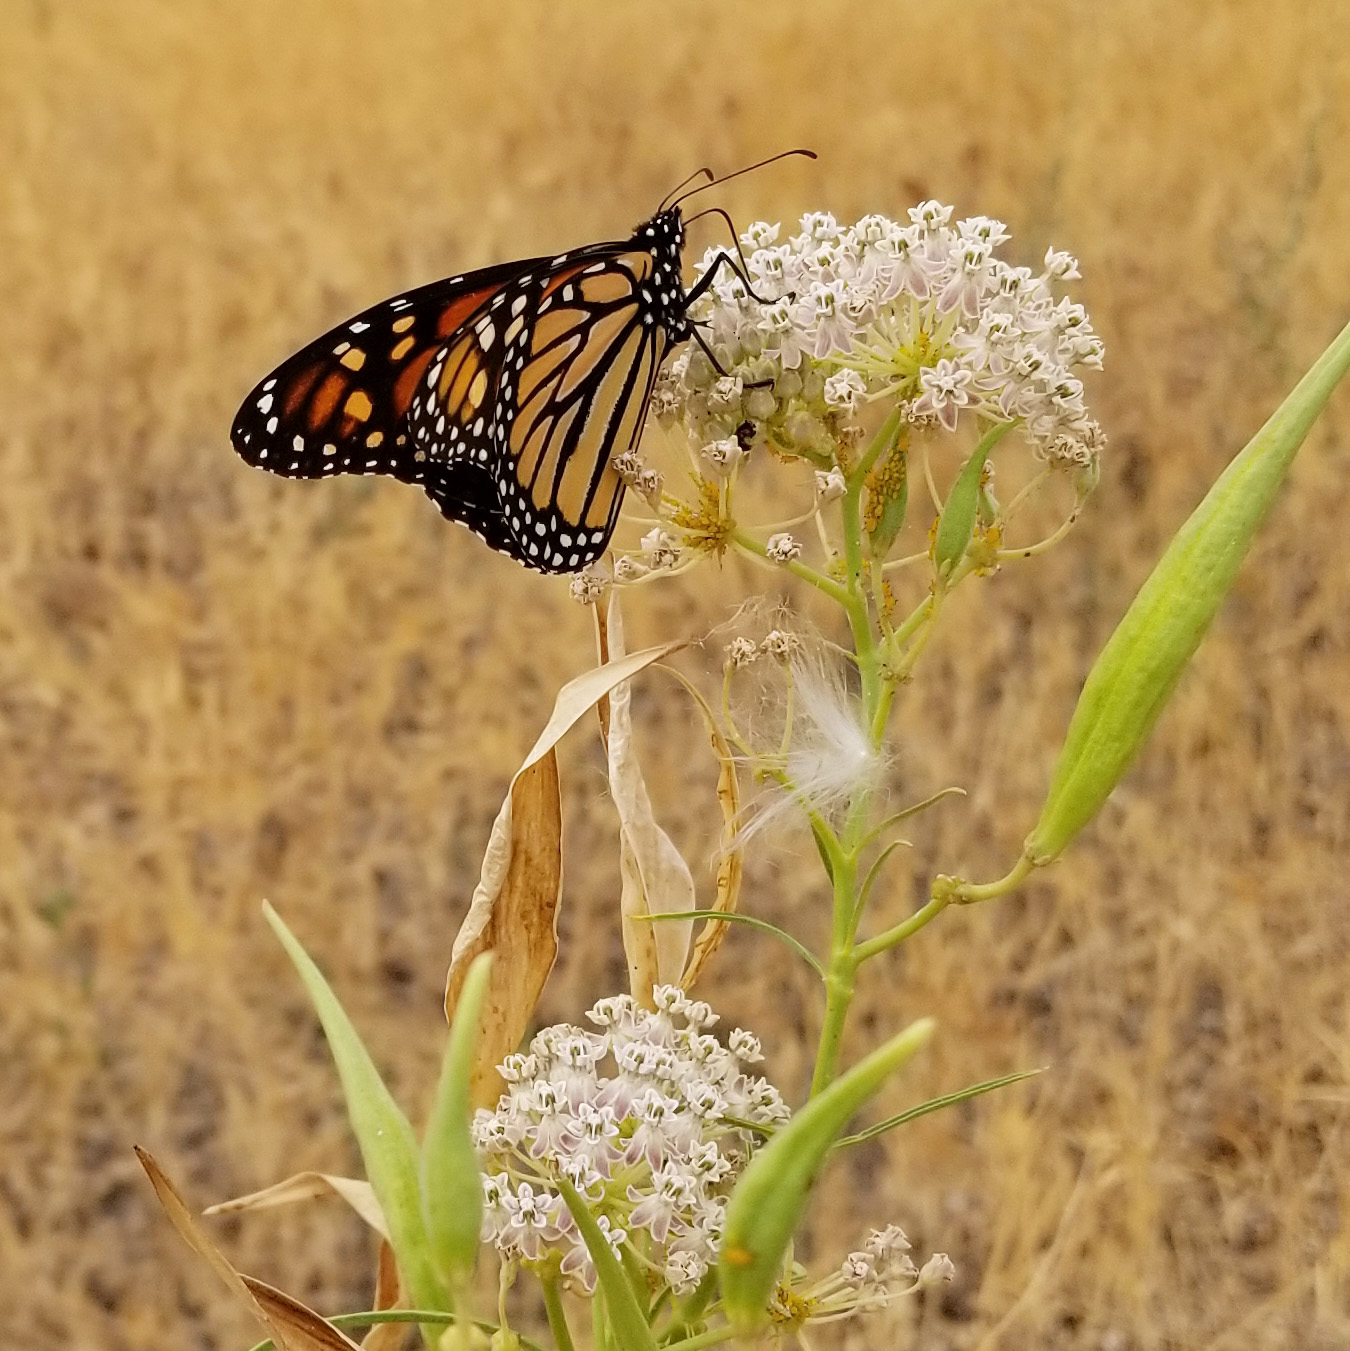 A monarch nectars on off-white milkweed blossoms in a dry field. There is a tuft of milkweed seed on the plant.